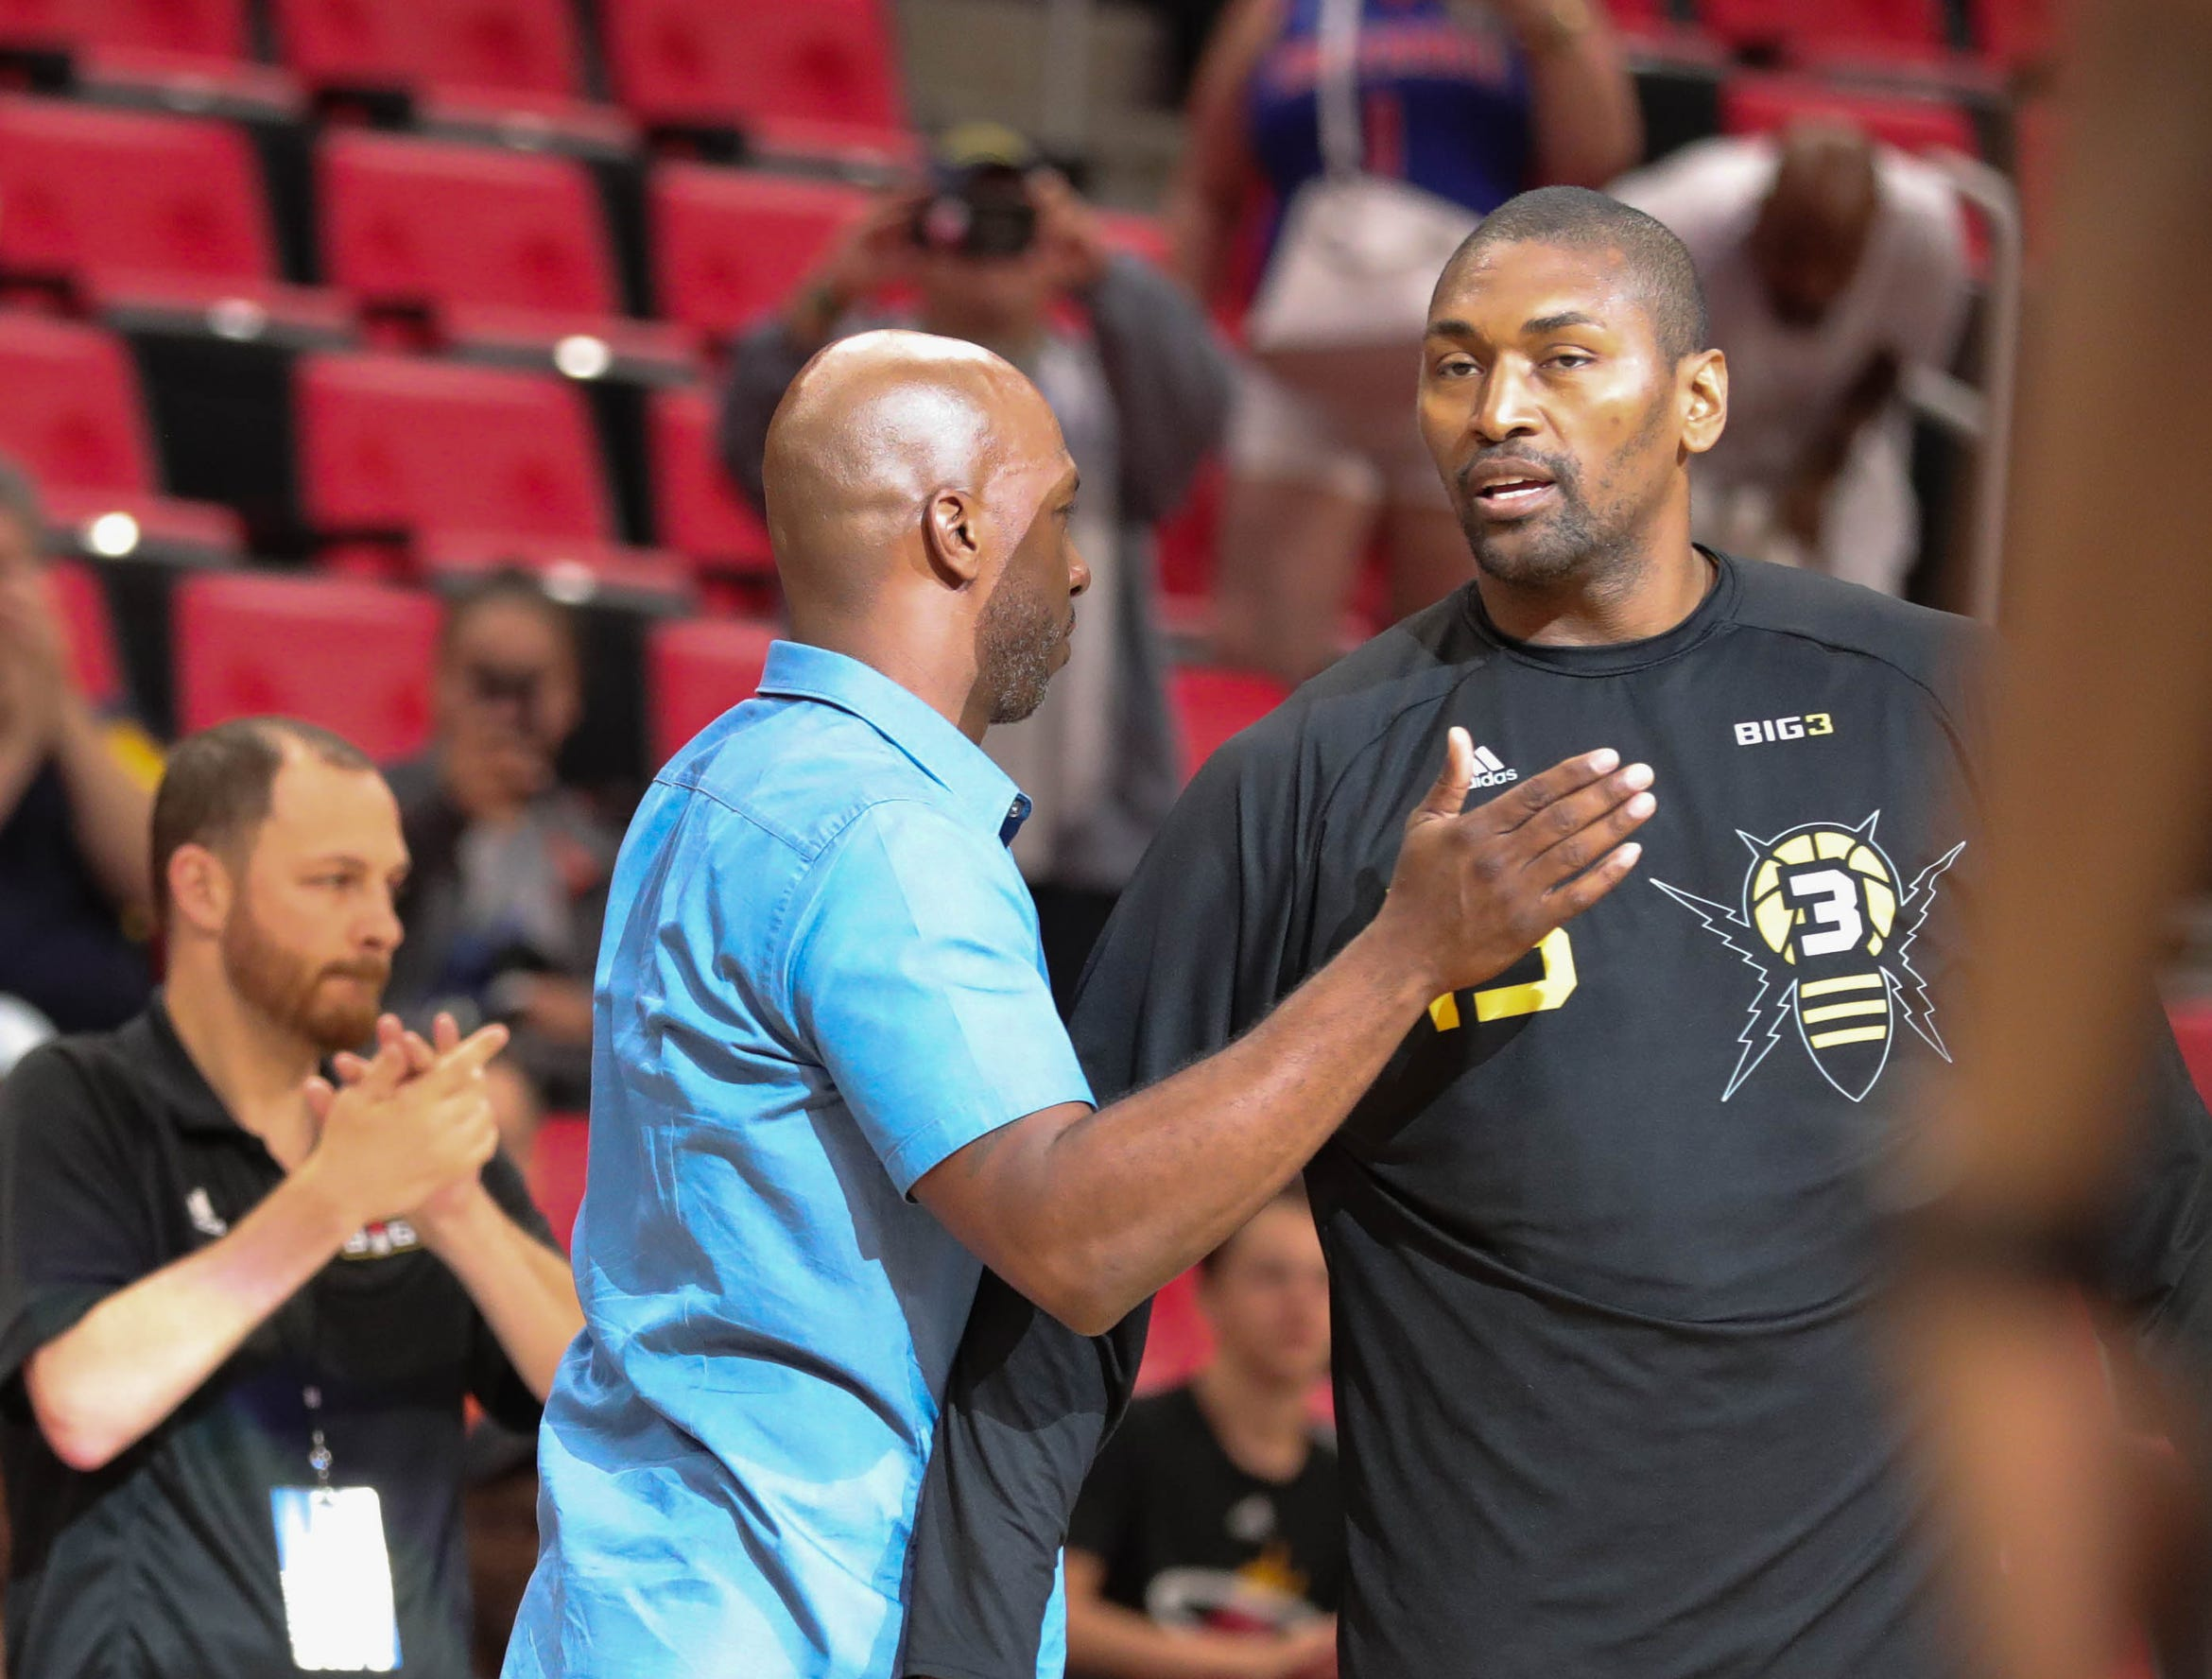 Chauncey Billups and Metta World Peace before BIG3 action on Friday, July 13, 2018 at Little Caesars Arena in Detroit.